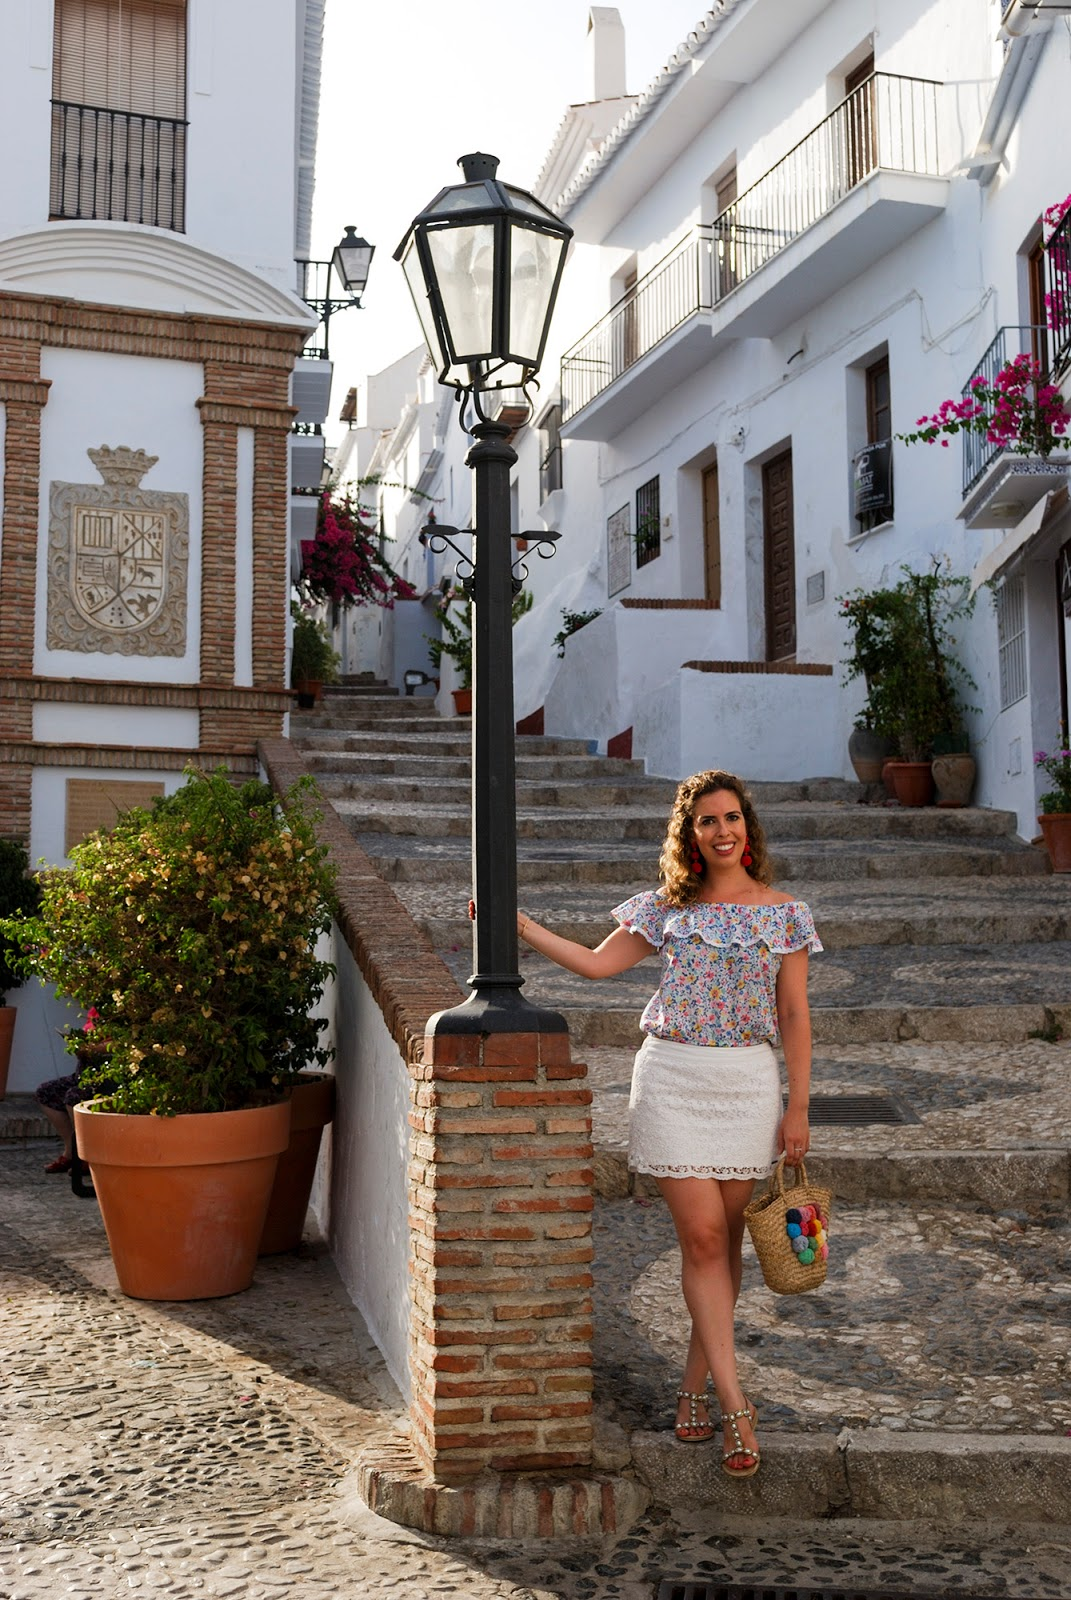 instagram worthy spots places spain instagrammable frigiliana nerja malaga pueblos bonitos